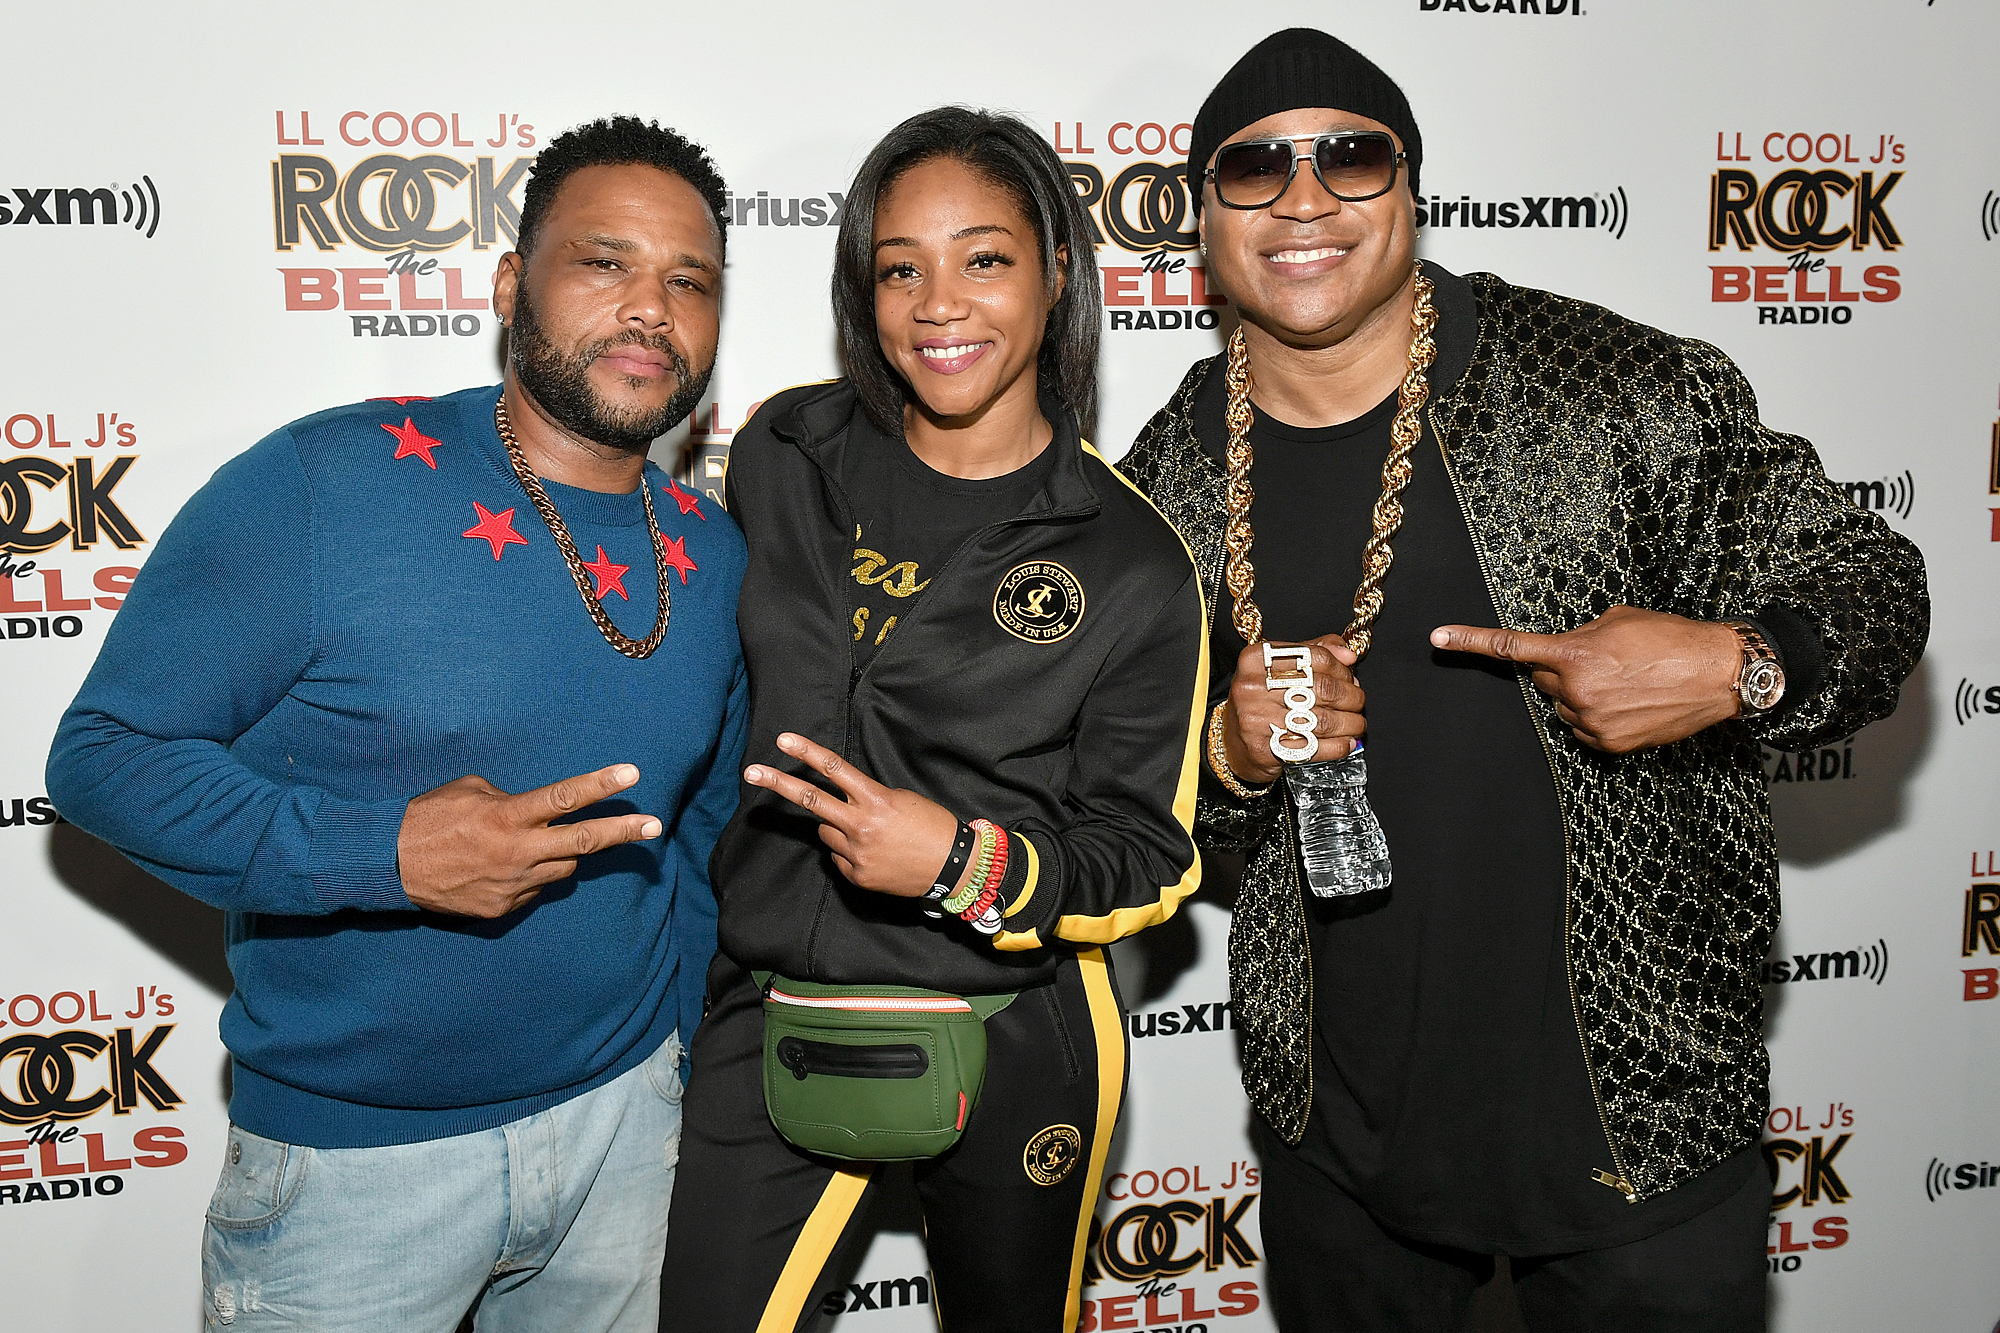 "LL COOL J Celebrates the Launch of His Exclusive SiriusXM Channel ""Rock The Bells Radio"" At World on Wheels in Los Angeles"